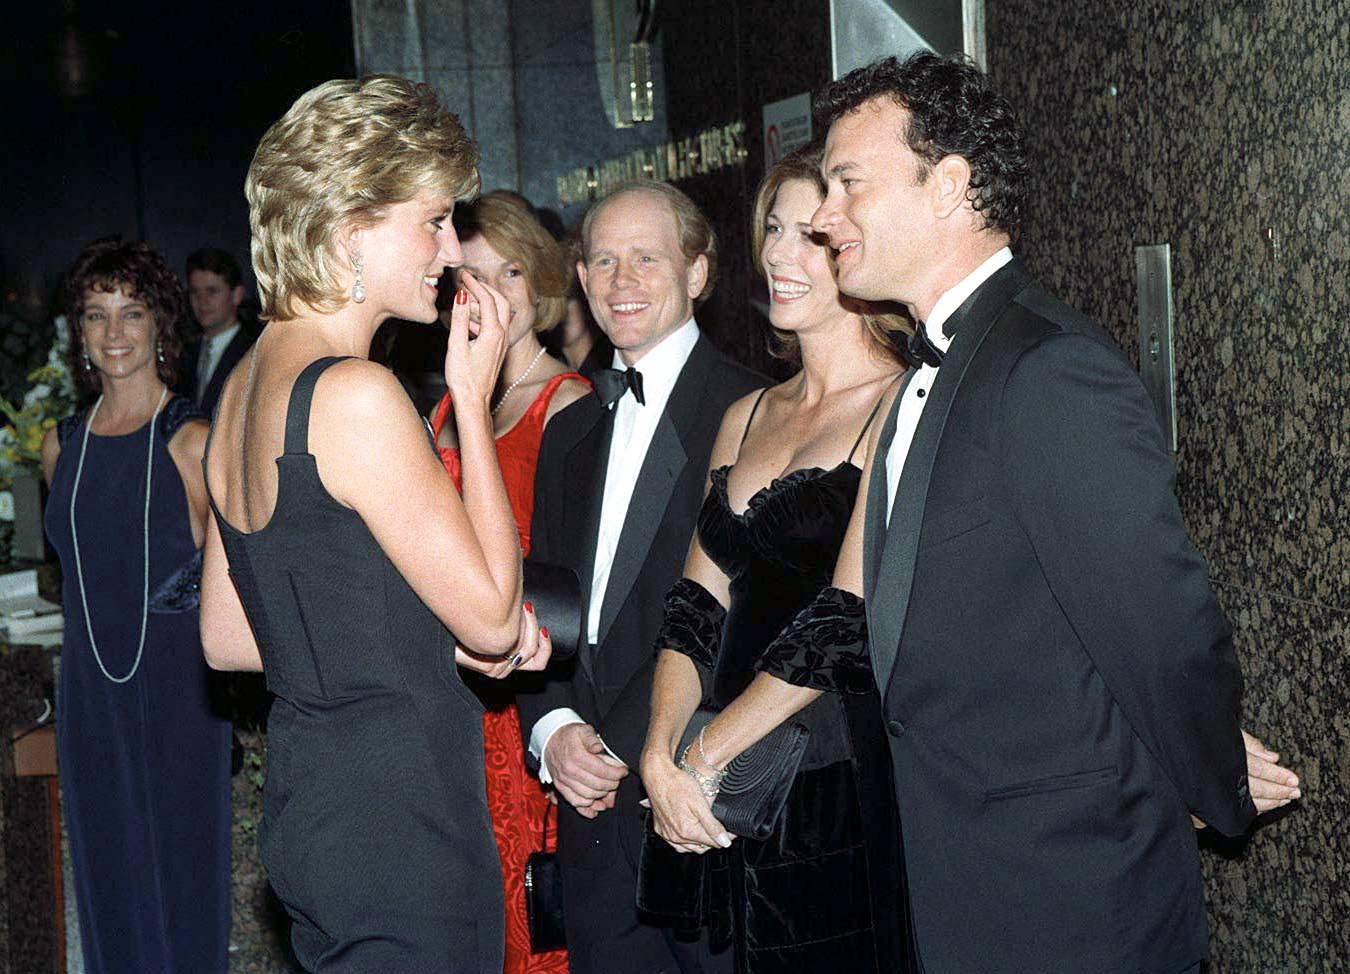 tom hanks was at princess diana s funeral plus see more stars who were there https www closerweekly com posts tom hanks princess diana funeral 140738